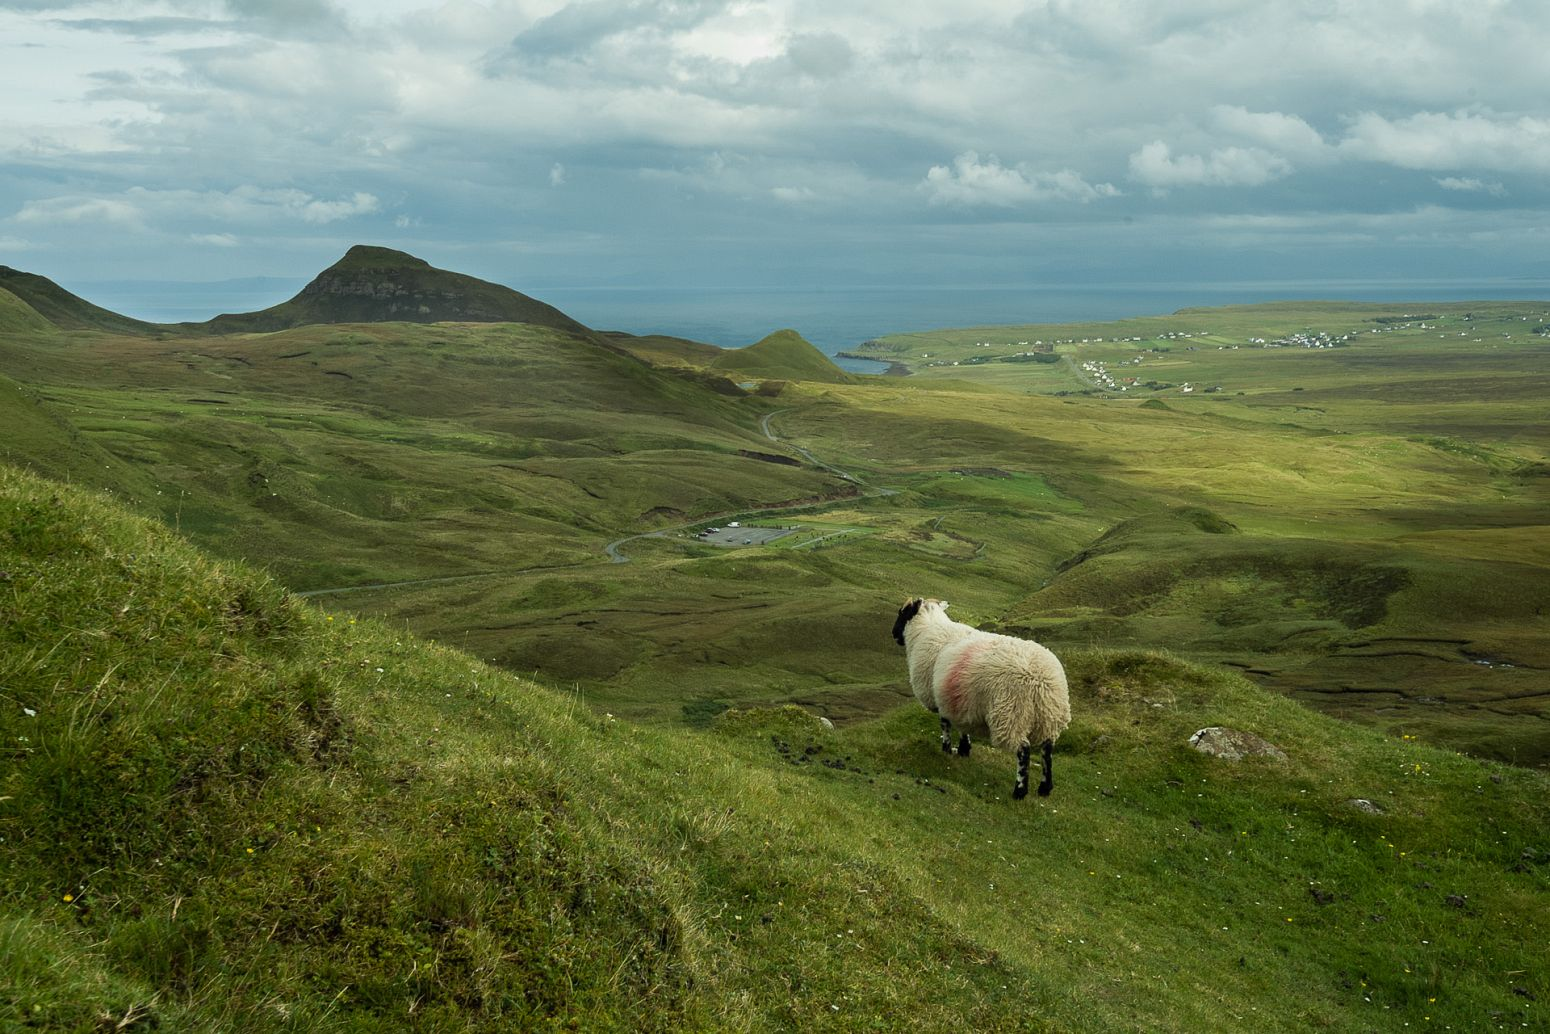 Contemplating sheep, Isle of Skye, Scotland